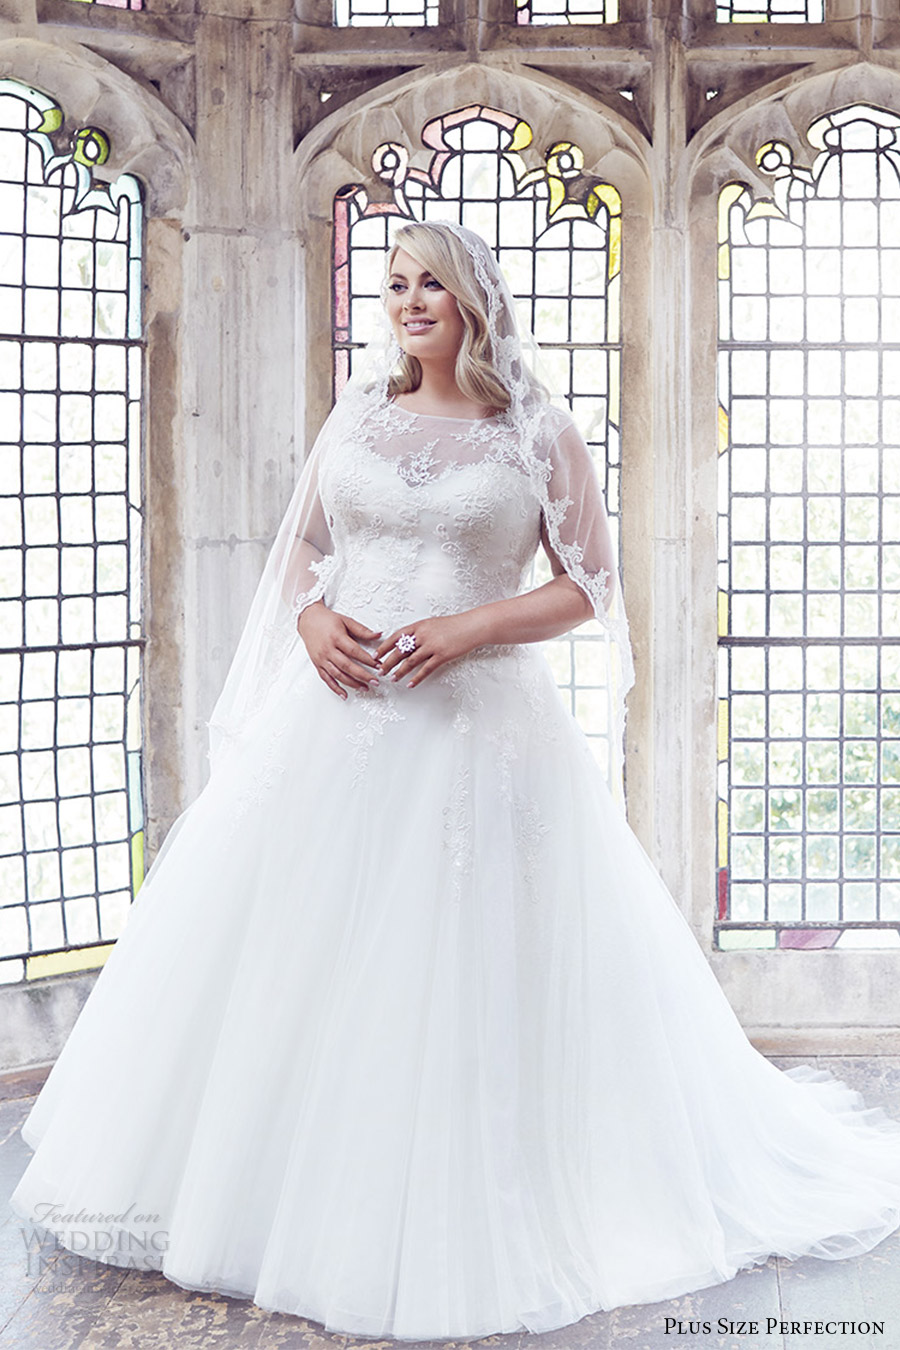 plus size perfection bridal 2016 cap sleeve sweetheart illusion jewel neck a line ball gown wedding dress (anastasia) zv romantic elegant